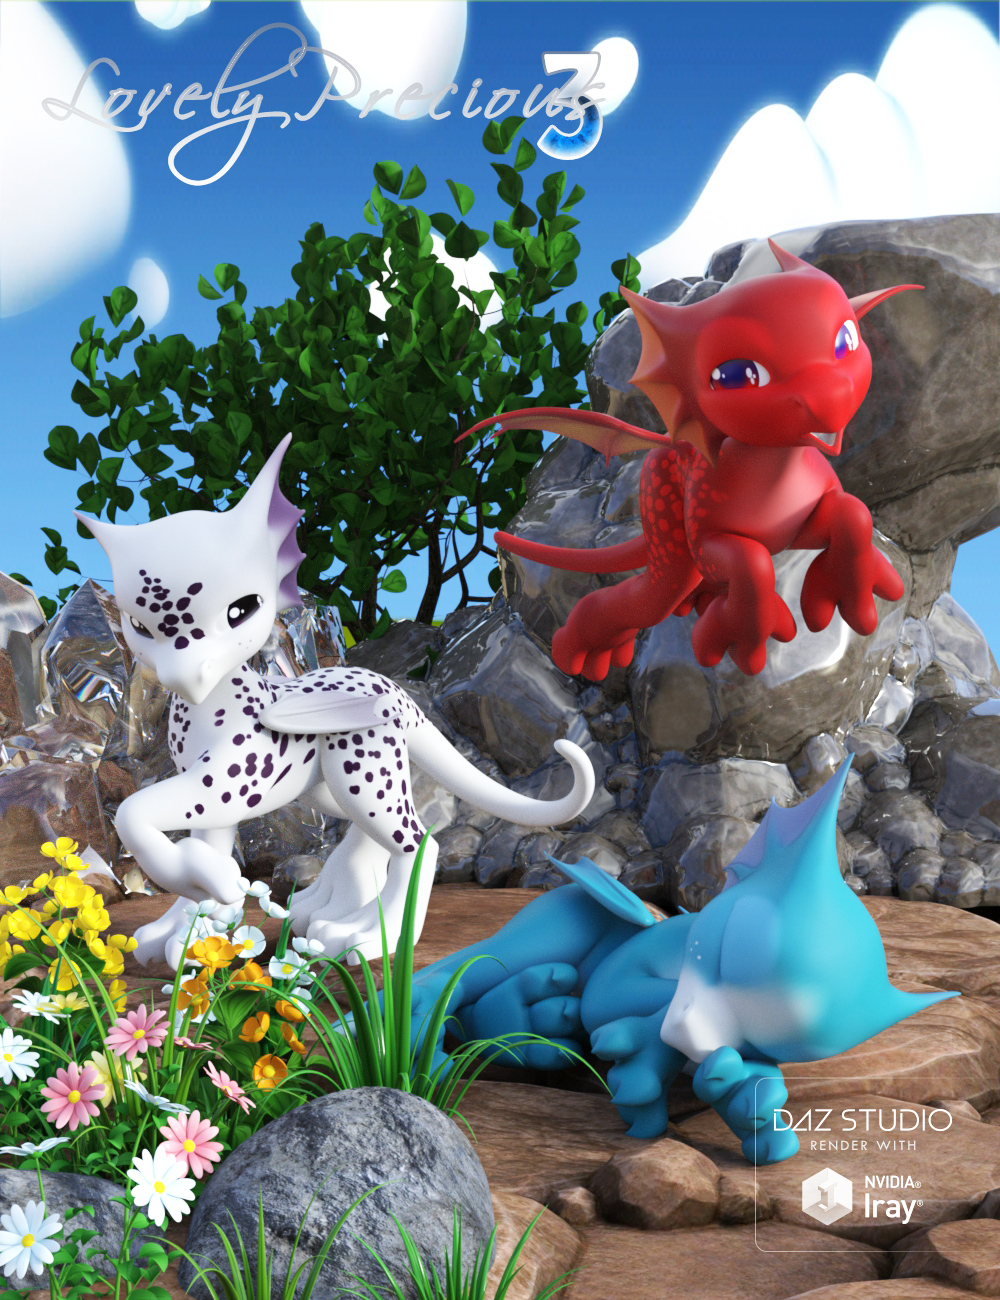 Lovely Precious Vol 03 - Dragon by: Muscleman, 3D Models by Daz 3D